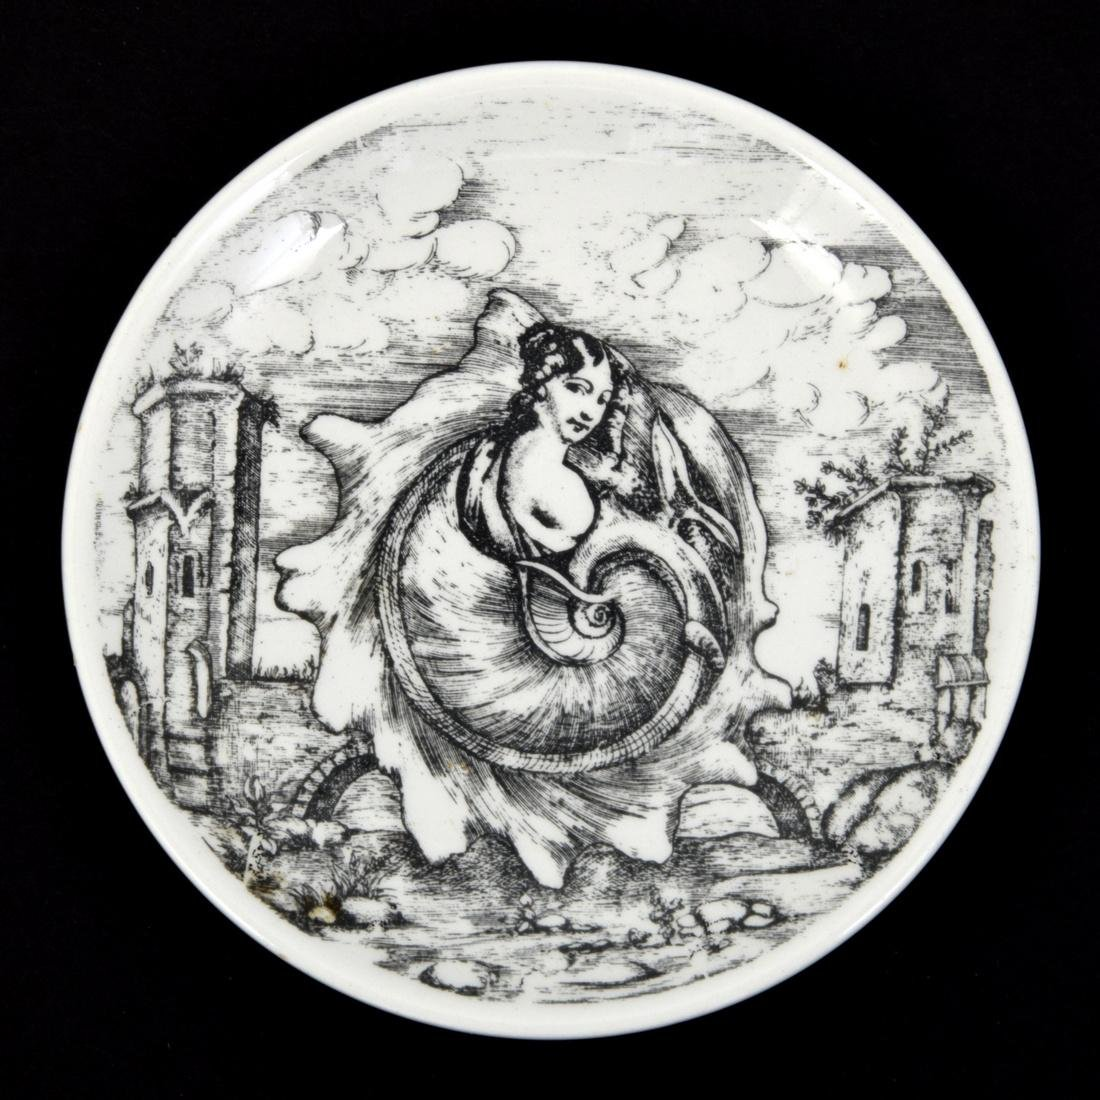 Piero Fornasetti LE OCEANIDI Coasters, Set of 6 - 5